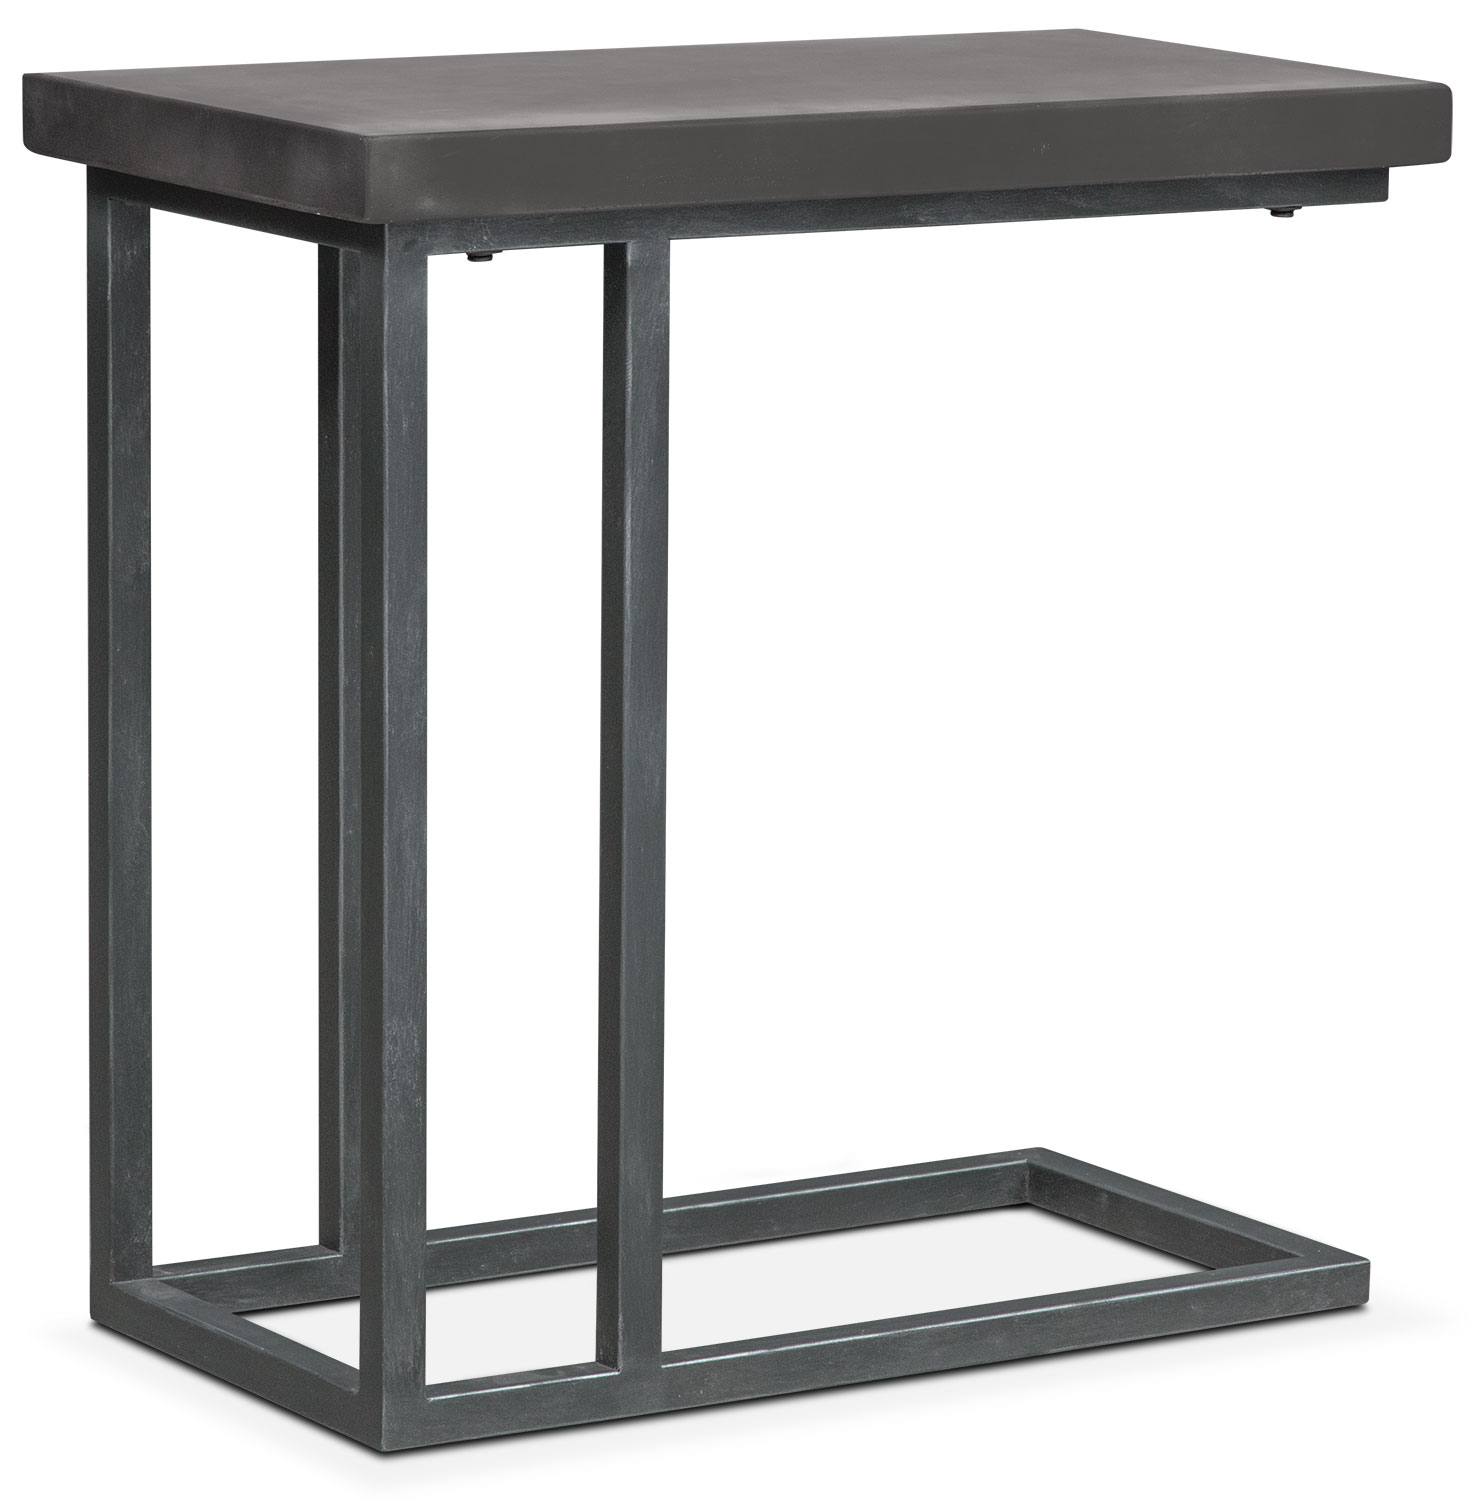 conde side table concrete american signature furniture outdoor accent apt baroque modern dining room round kitchen tablecloths adjustable height coffee ikea battery powered desk